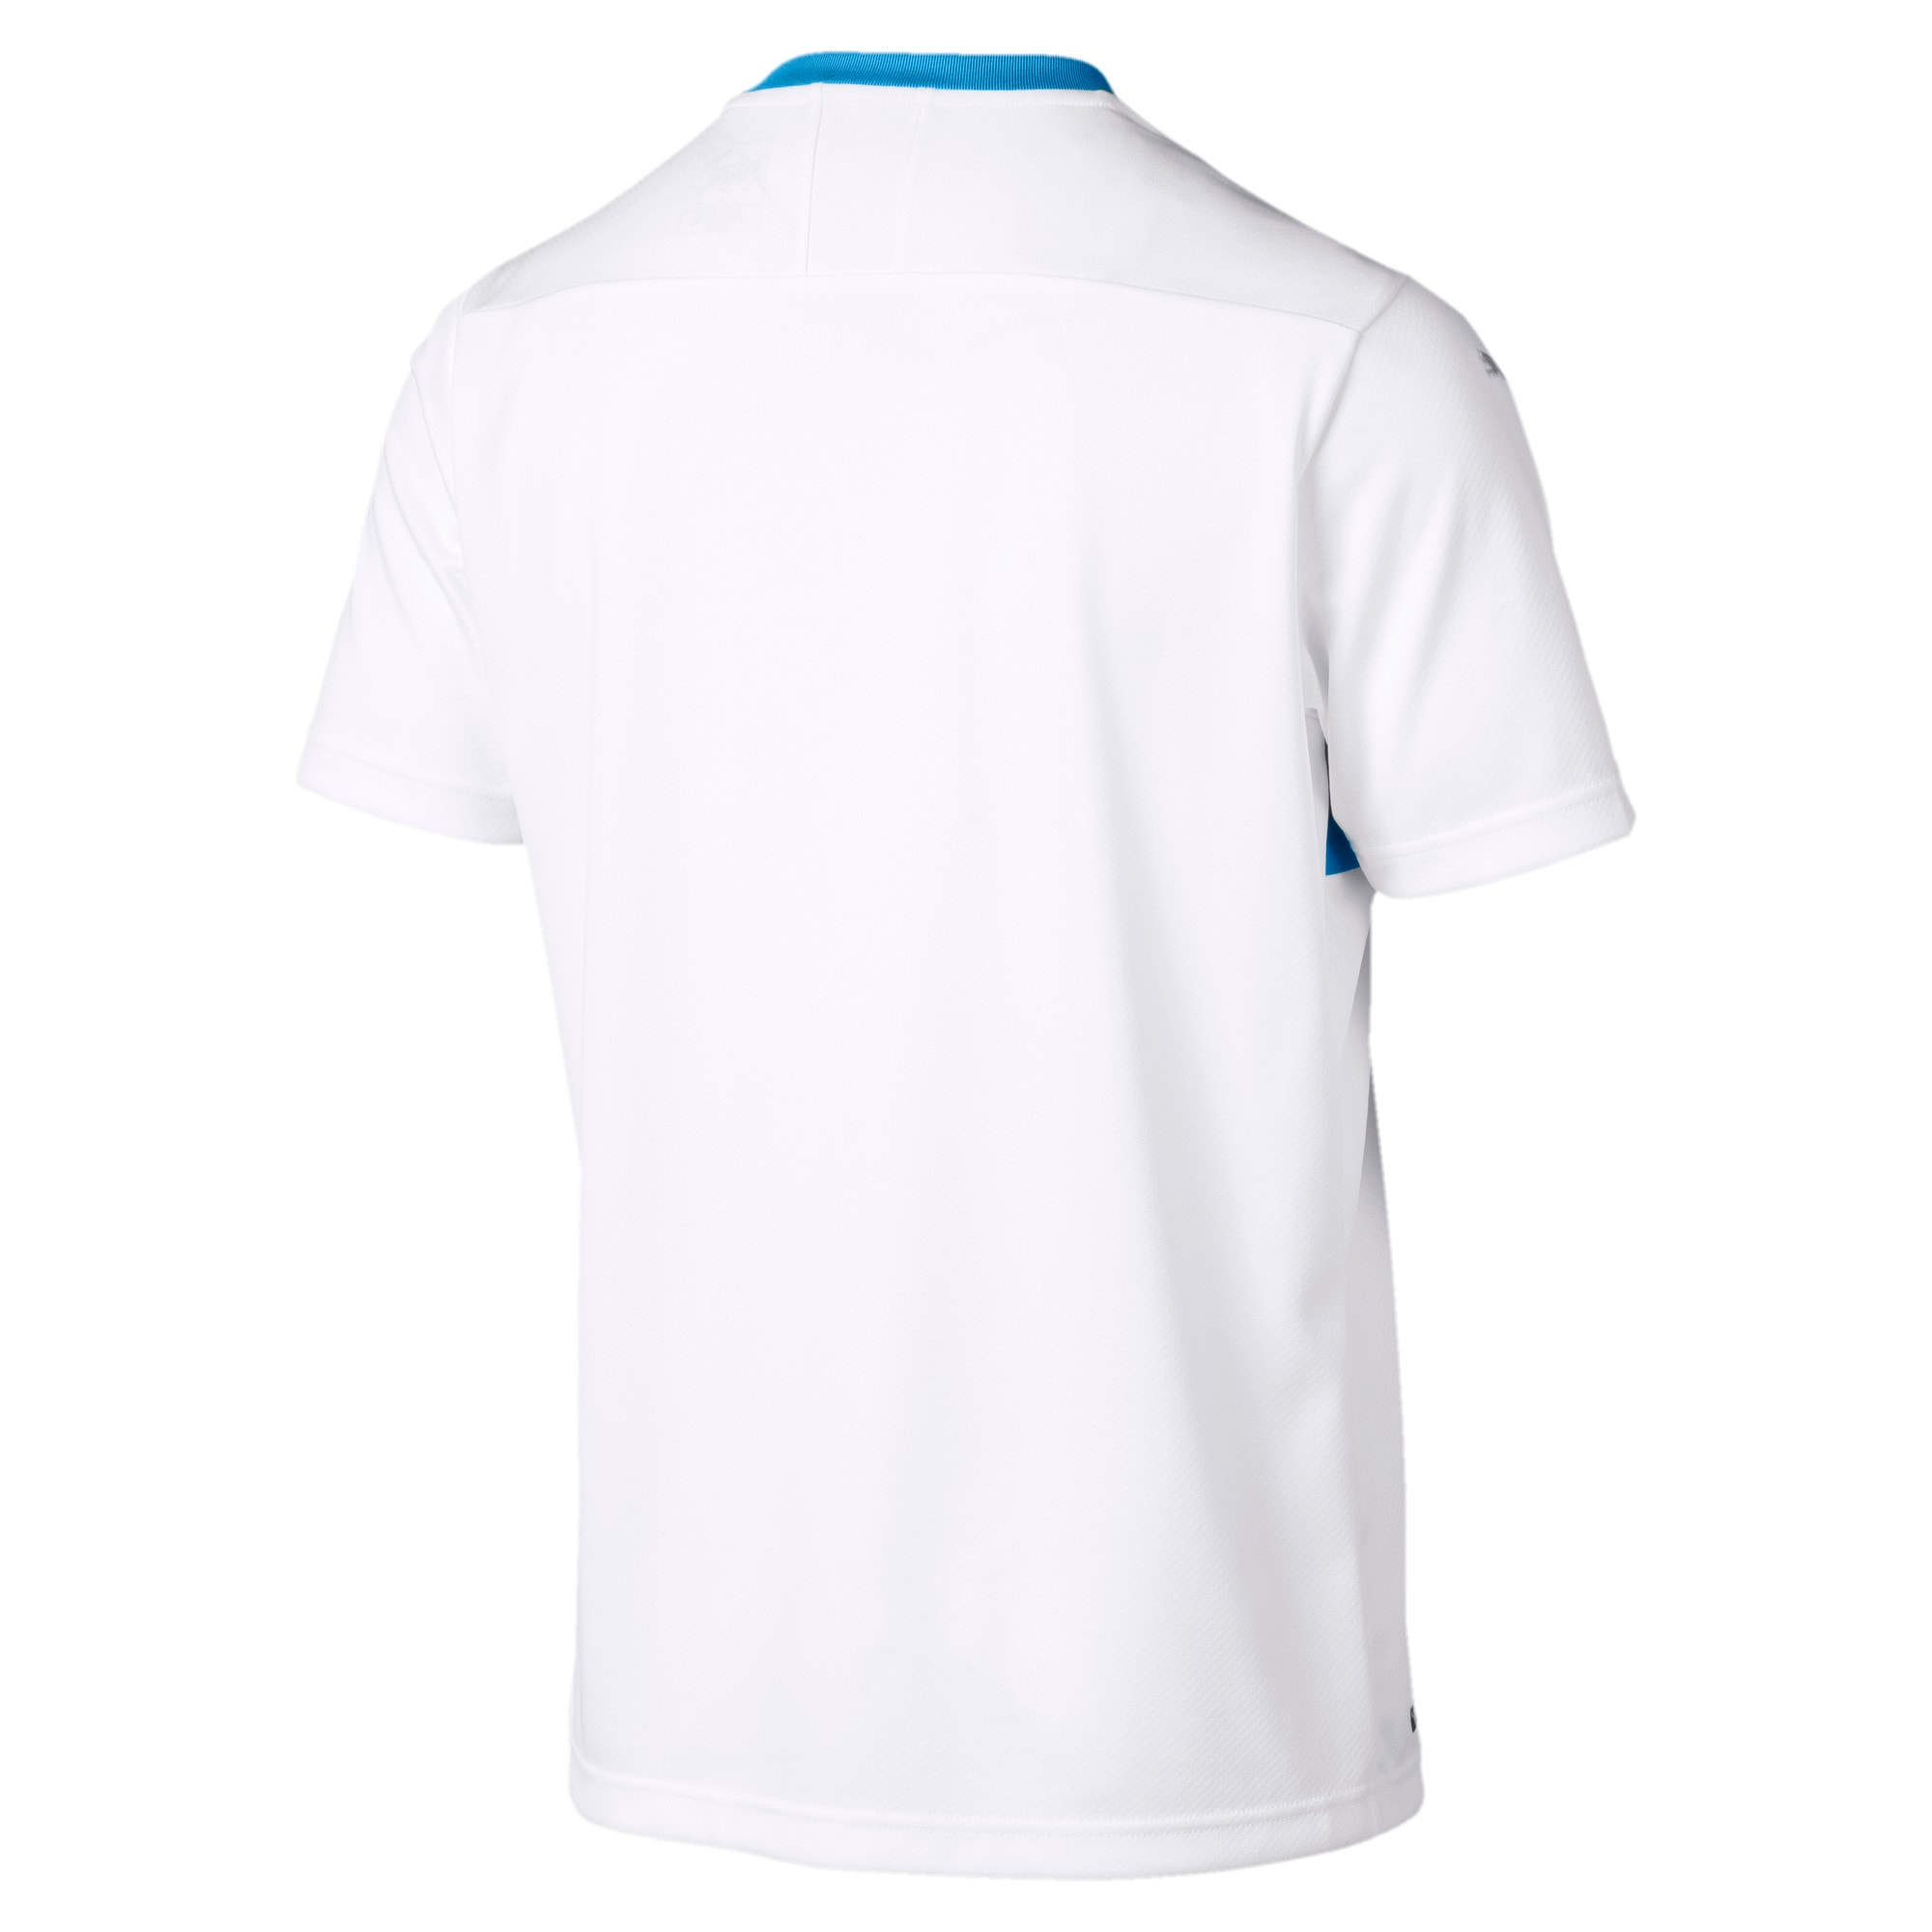 Thumbnail 2 of Olympique de Marseille 120th Anniversary Short Sleeve Men's Replica Jersey, Puma White-Bleu Azur, medium